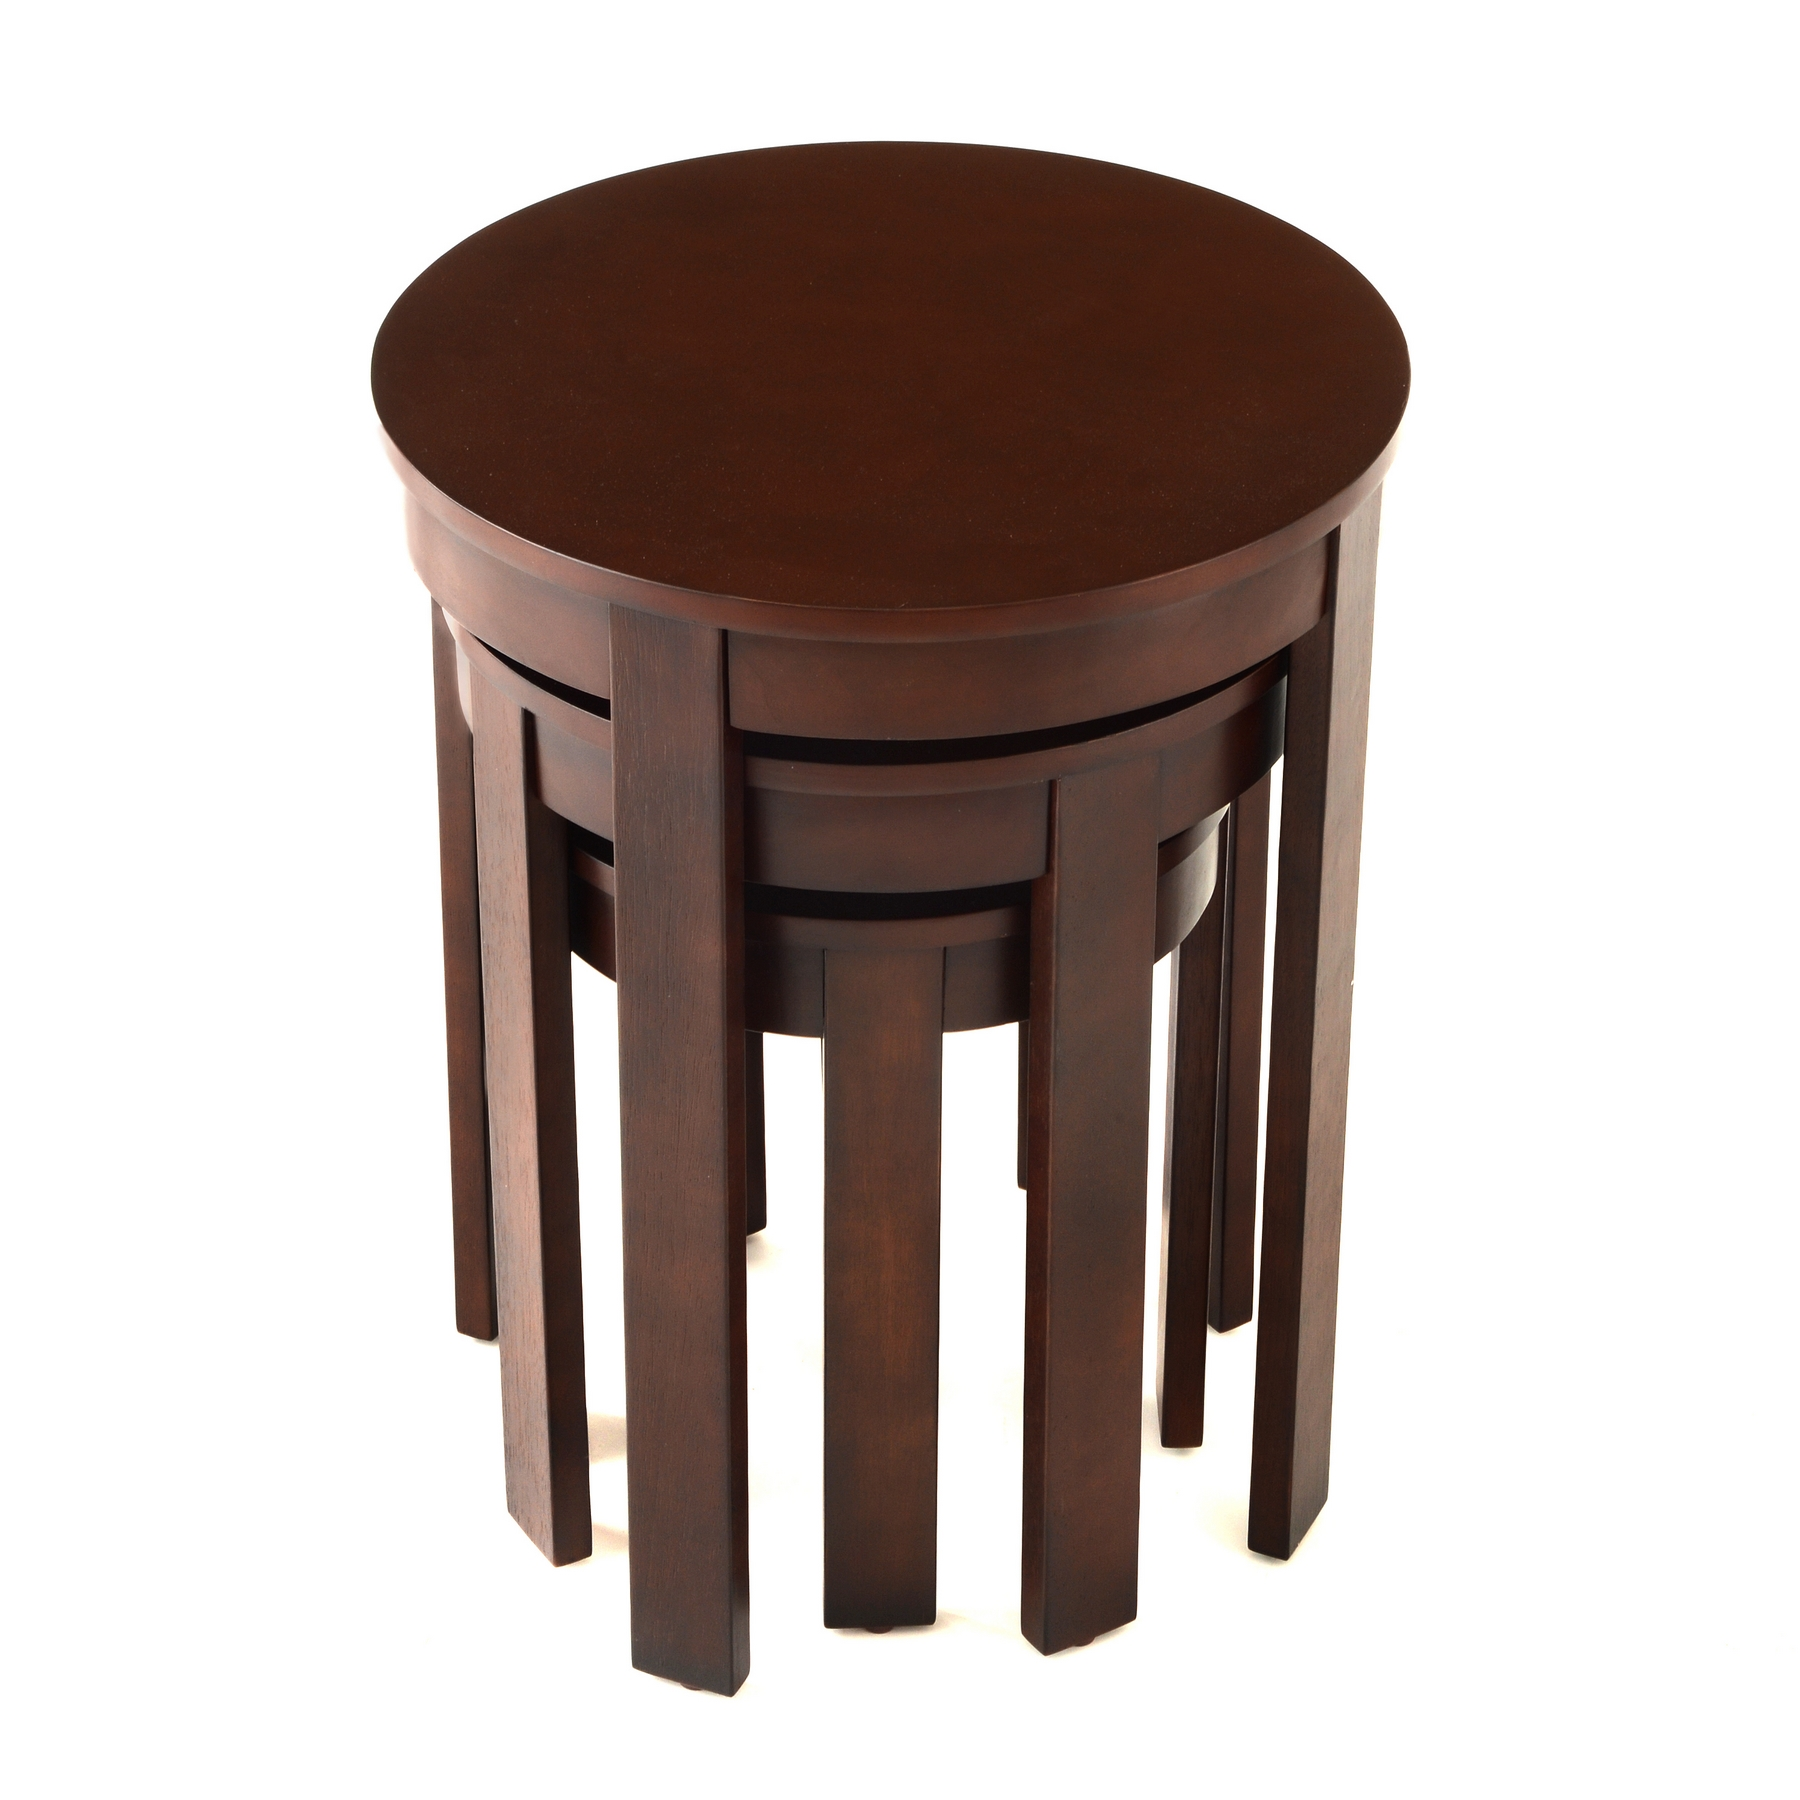 furniture timeless piece for your home with round west elm glass table nesting tables lucite coffee ikea marble side antique outdoo accent toronto tall cover square patio and